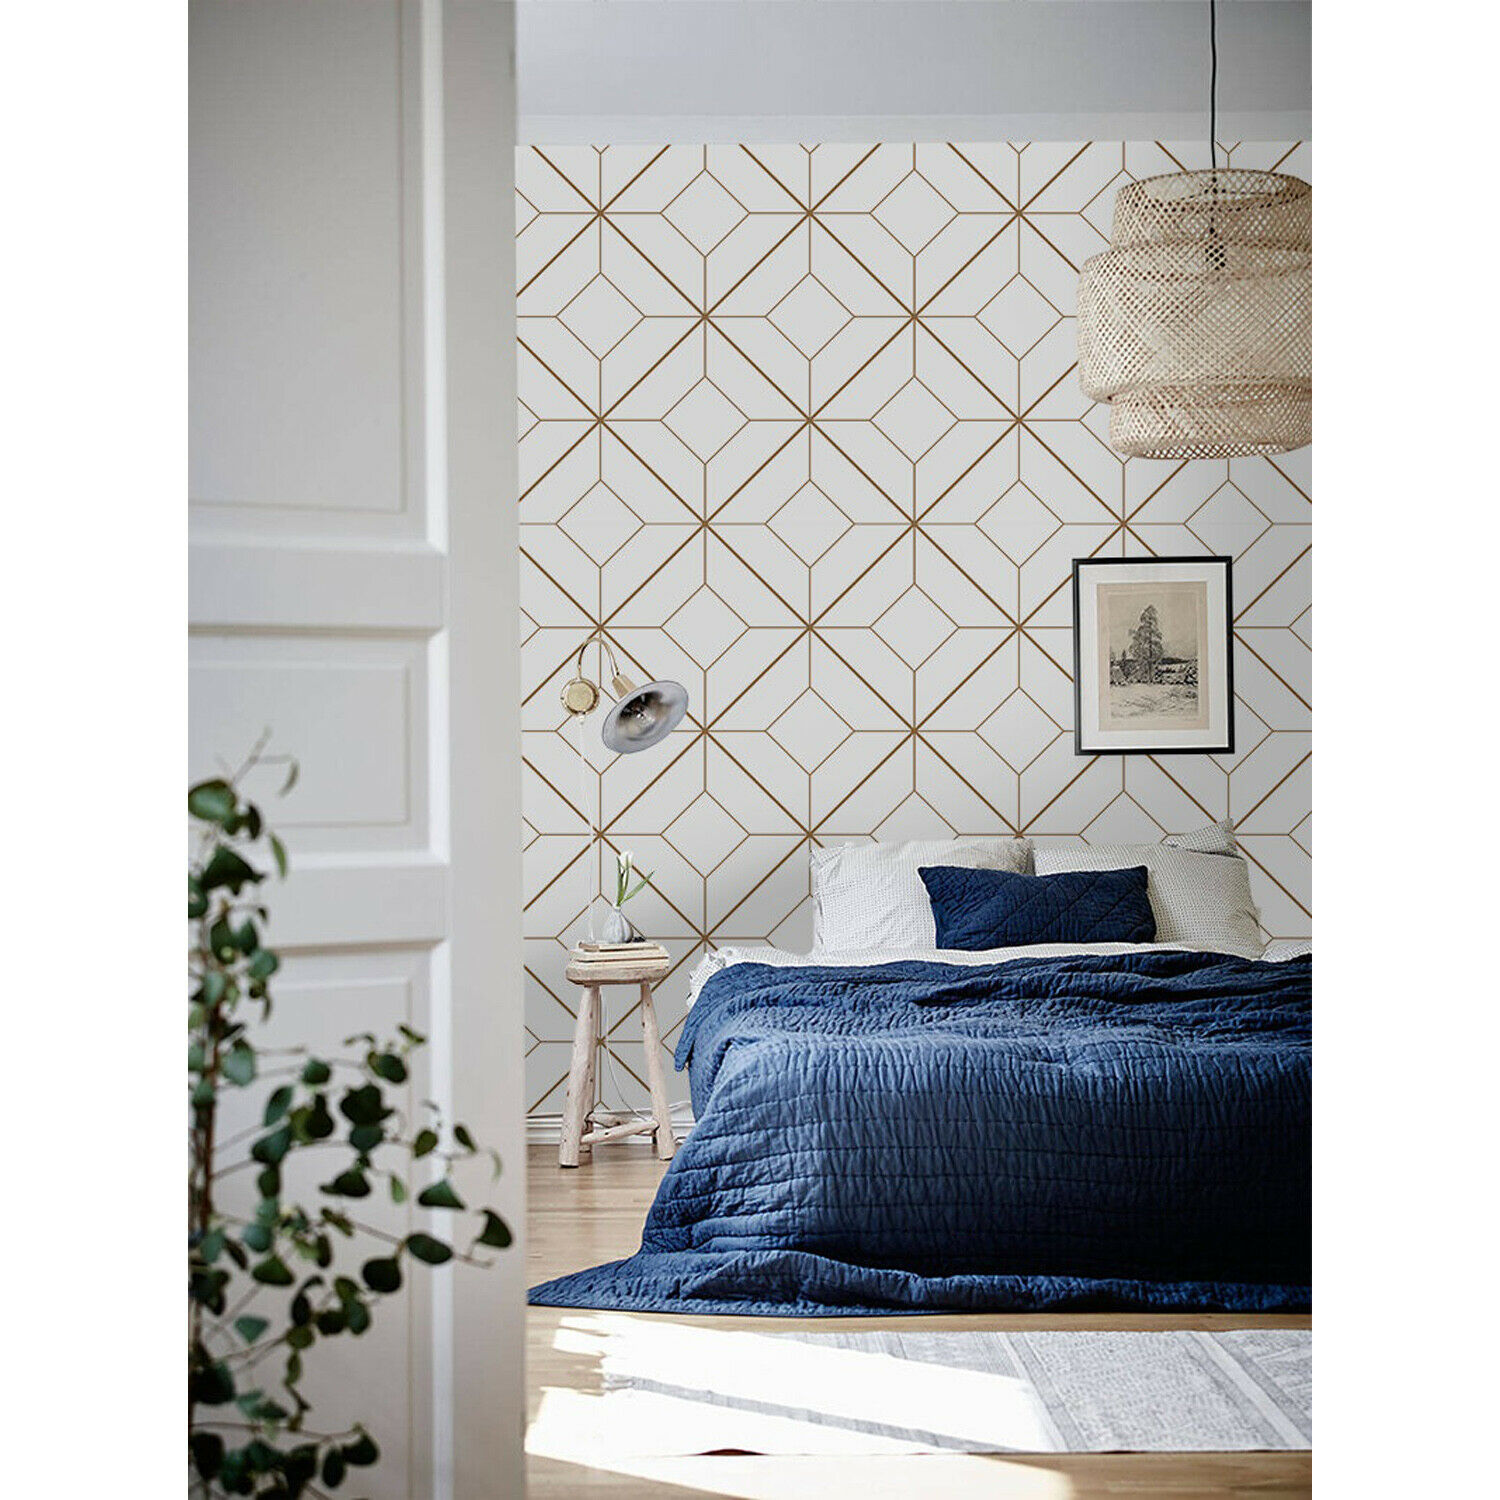 Geometric Non-woven wallpaper Golden and Weiß Home wall mural photo mural